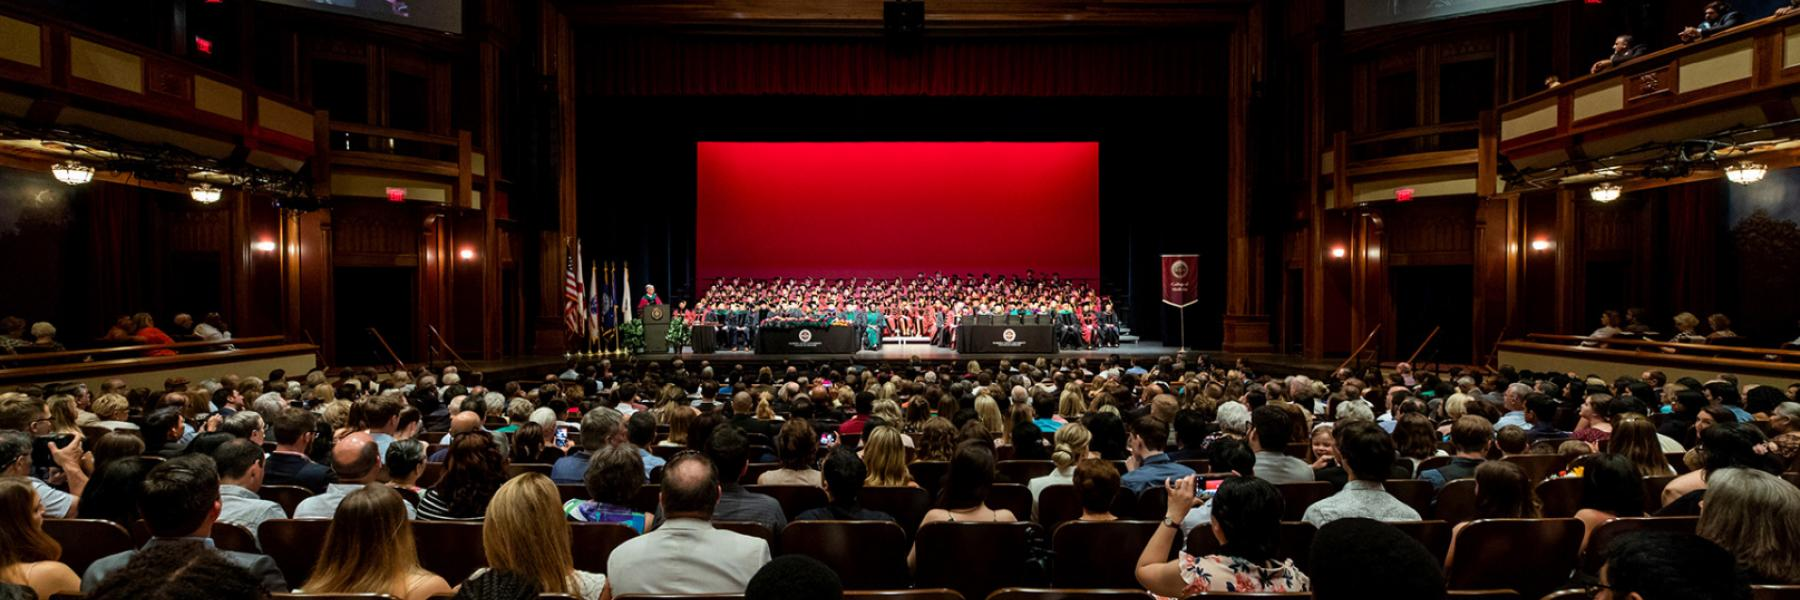 The Ruby Diamond stage was packed with garnet caps and gowns during graduation.